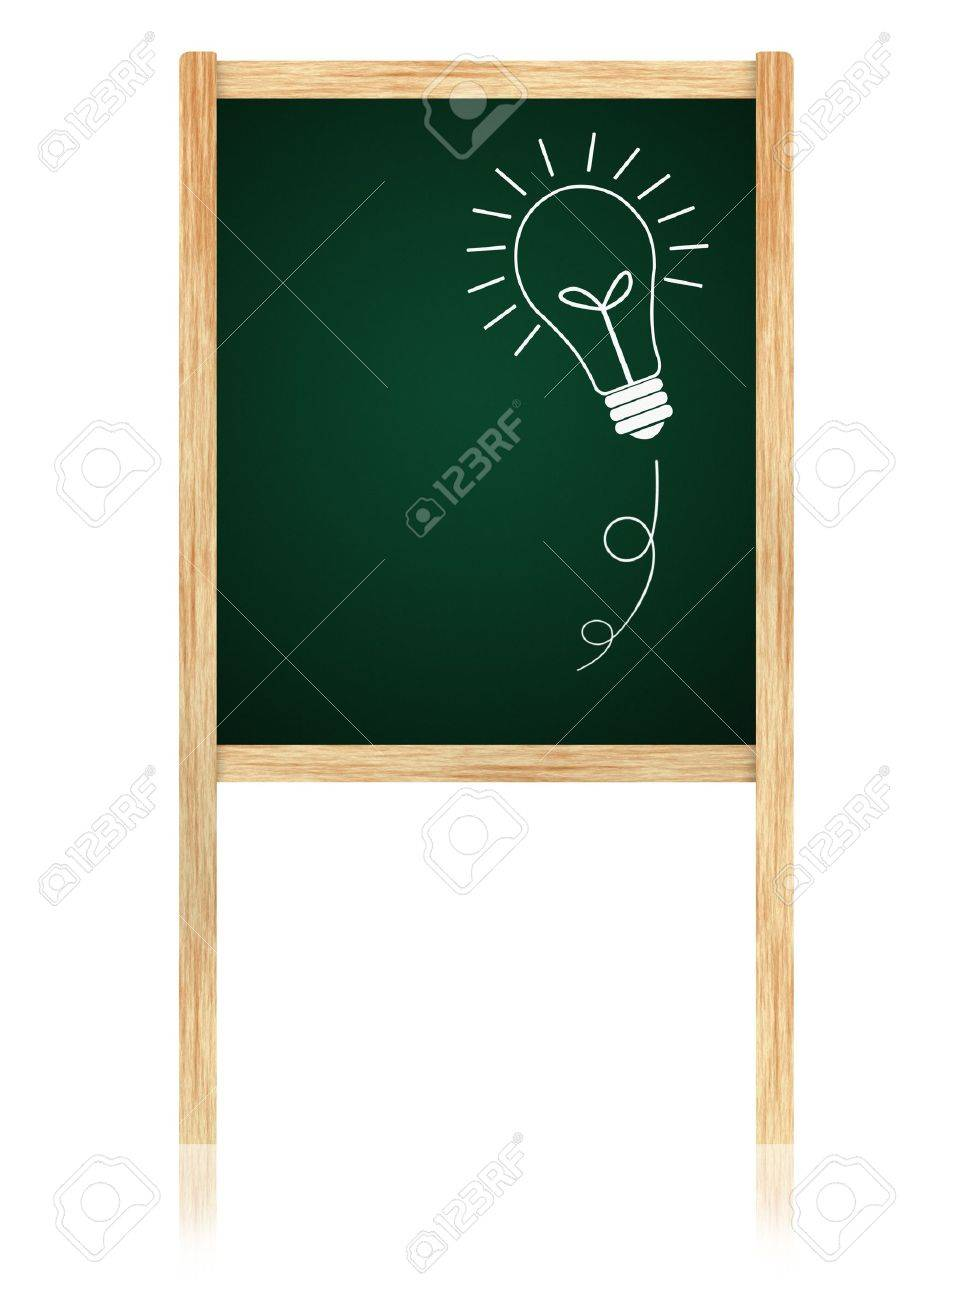 bulb idea on Greenboard with wooden frame isolate on white background. Stock Photo - 11006117